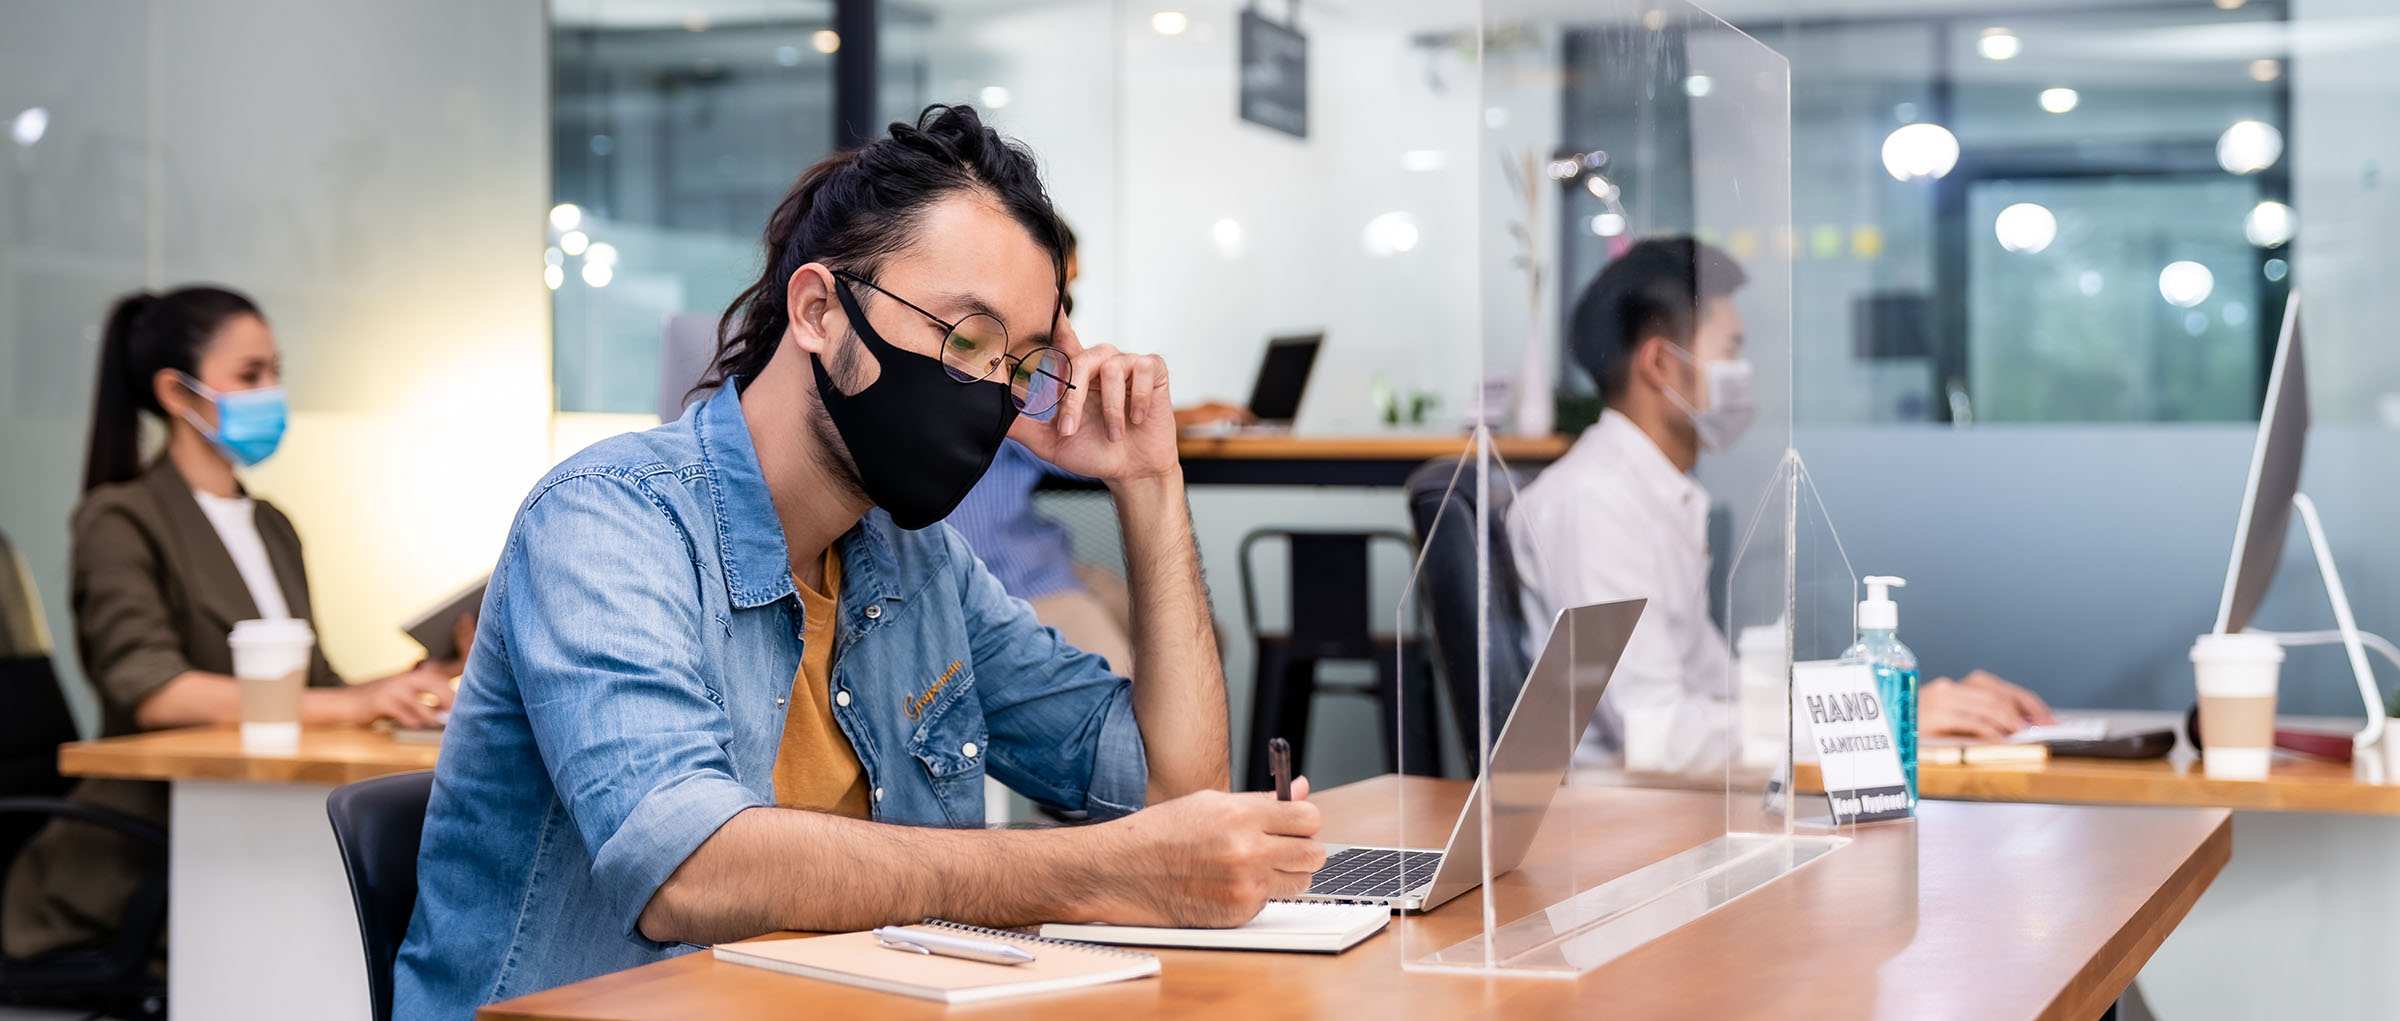 Panoramic group of business worker team wear protective face mask in new normal office with social distance practice with hand sanitiser alcohol gel on table prevent coronavirus COVID-19 spreading